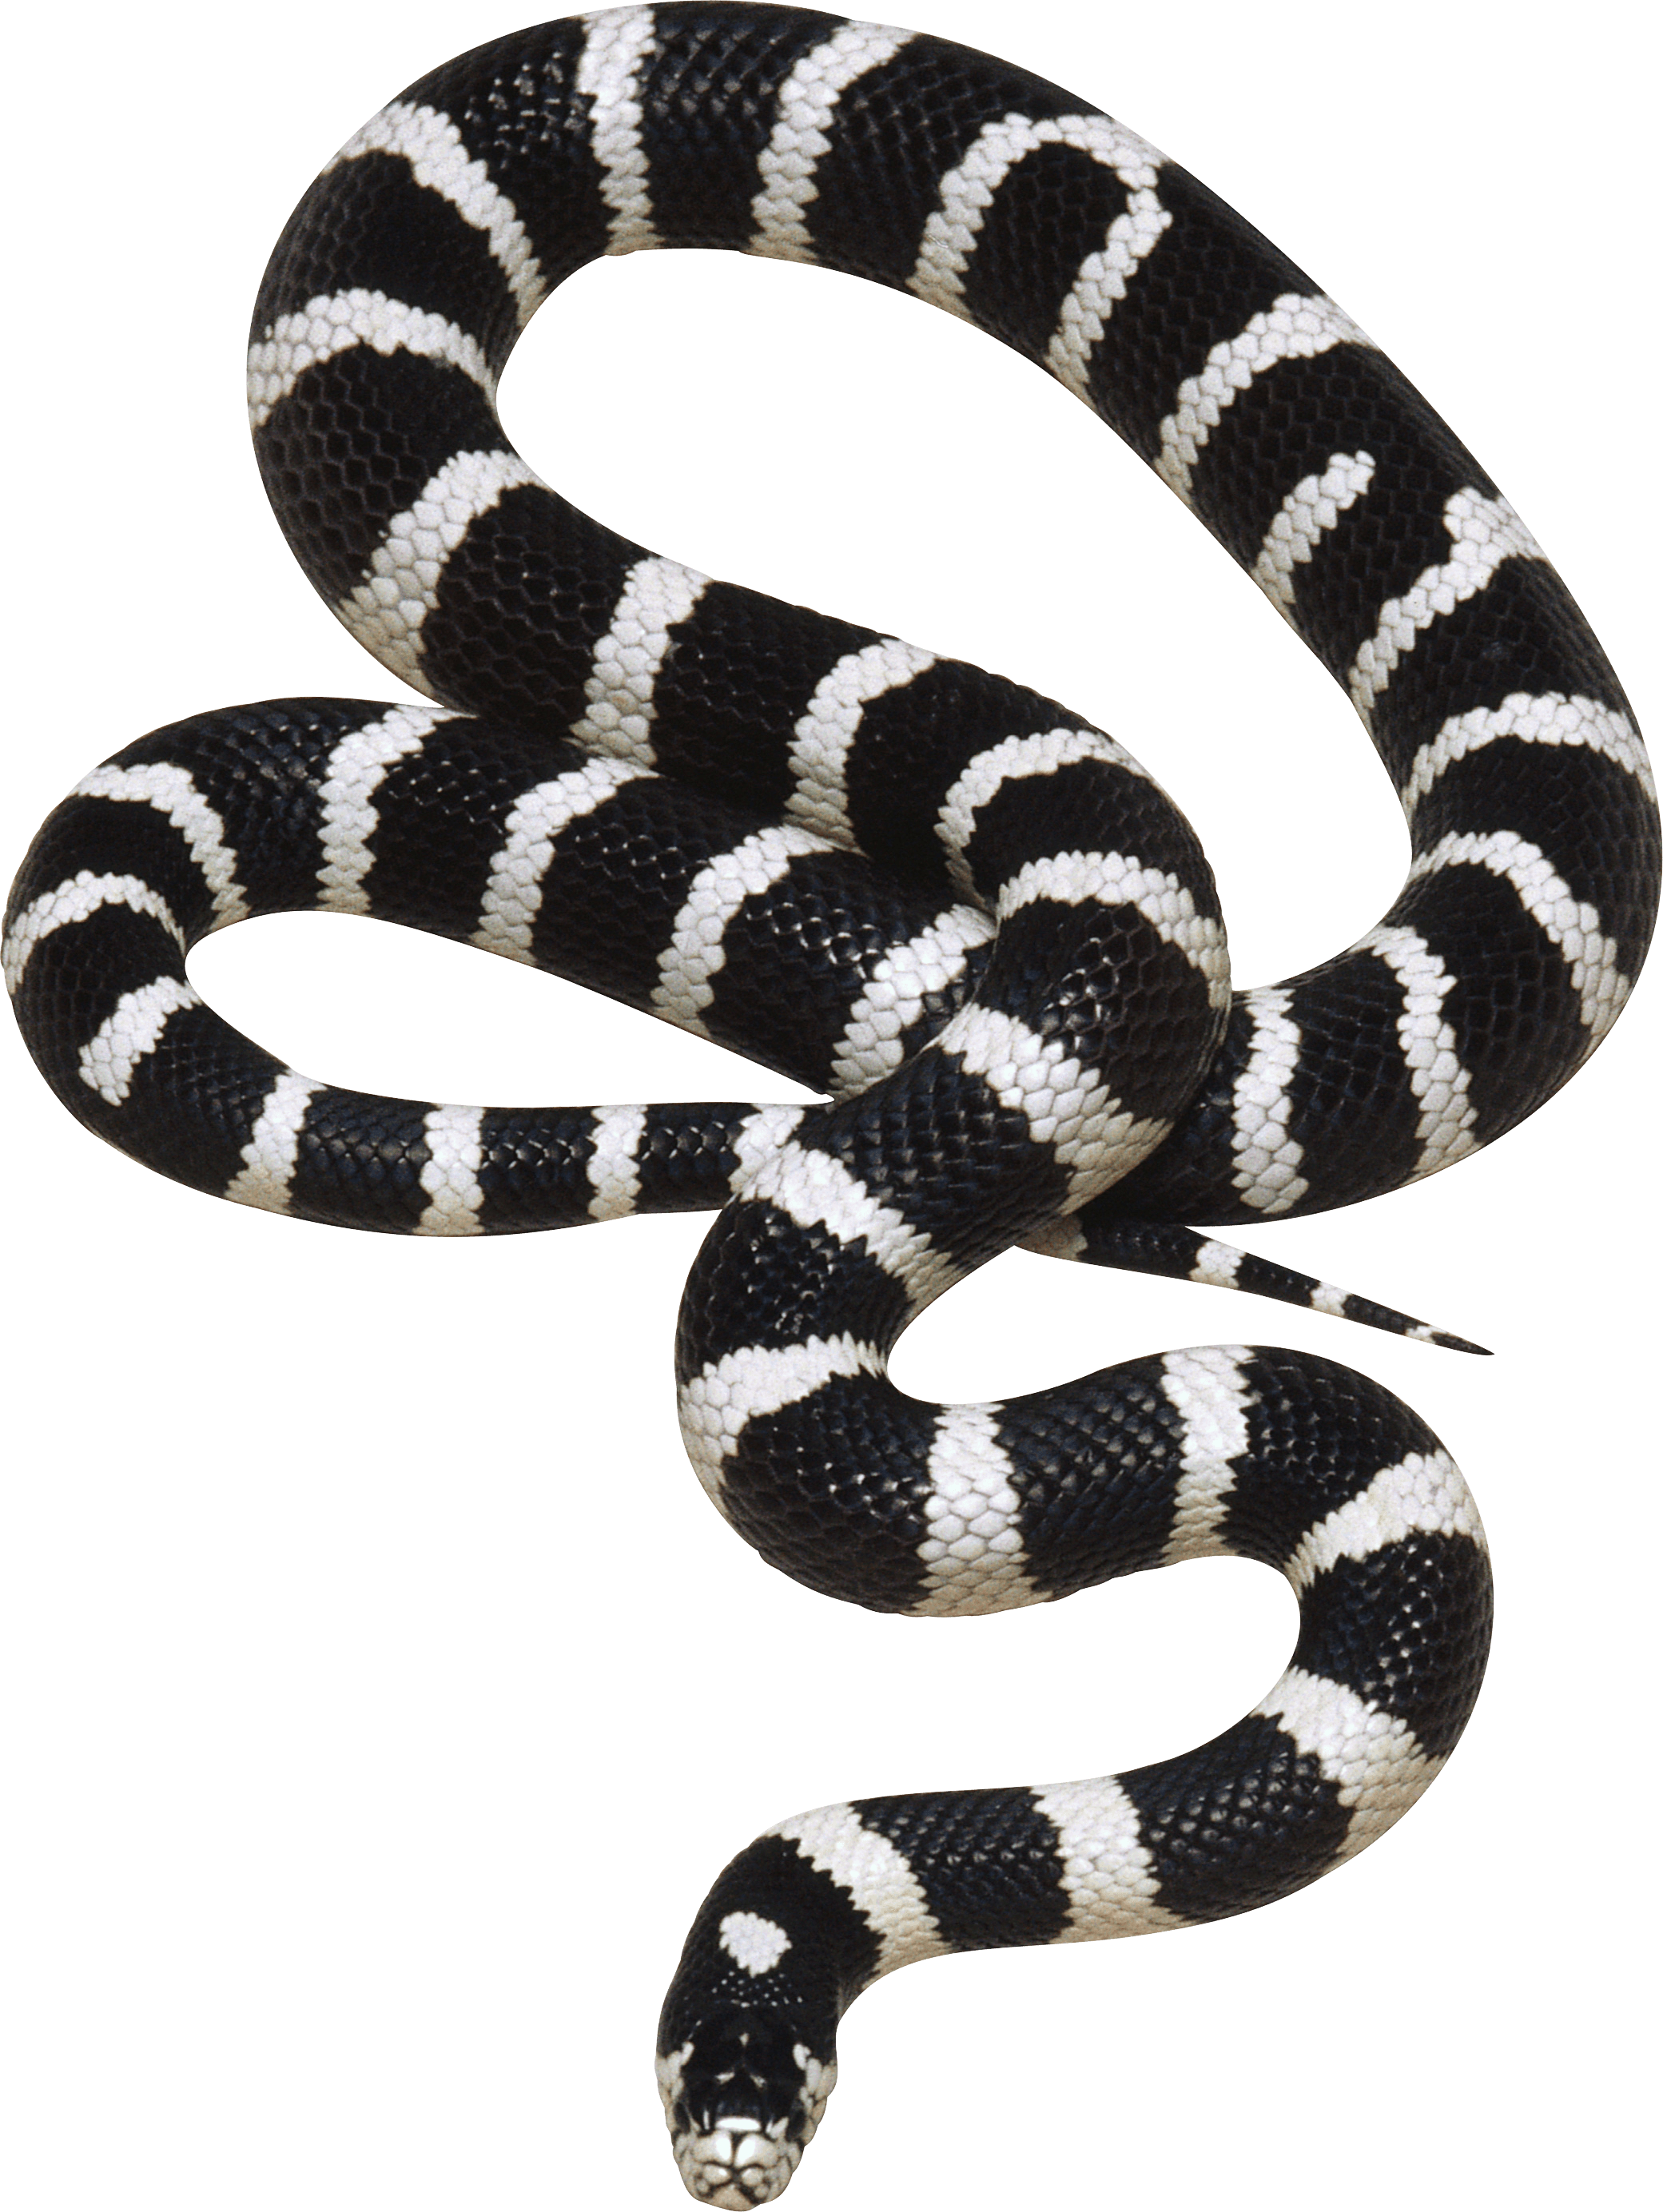 Black And White Snake Png Image Black And Yellow Snake Snake Animals Black And White